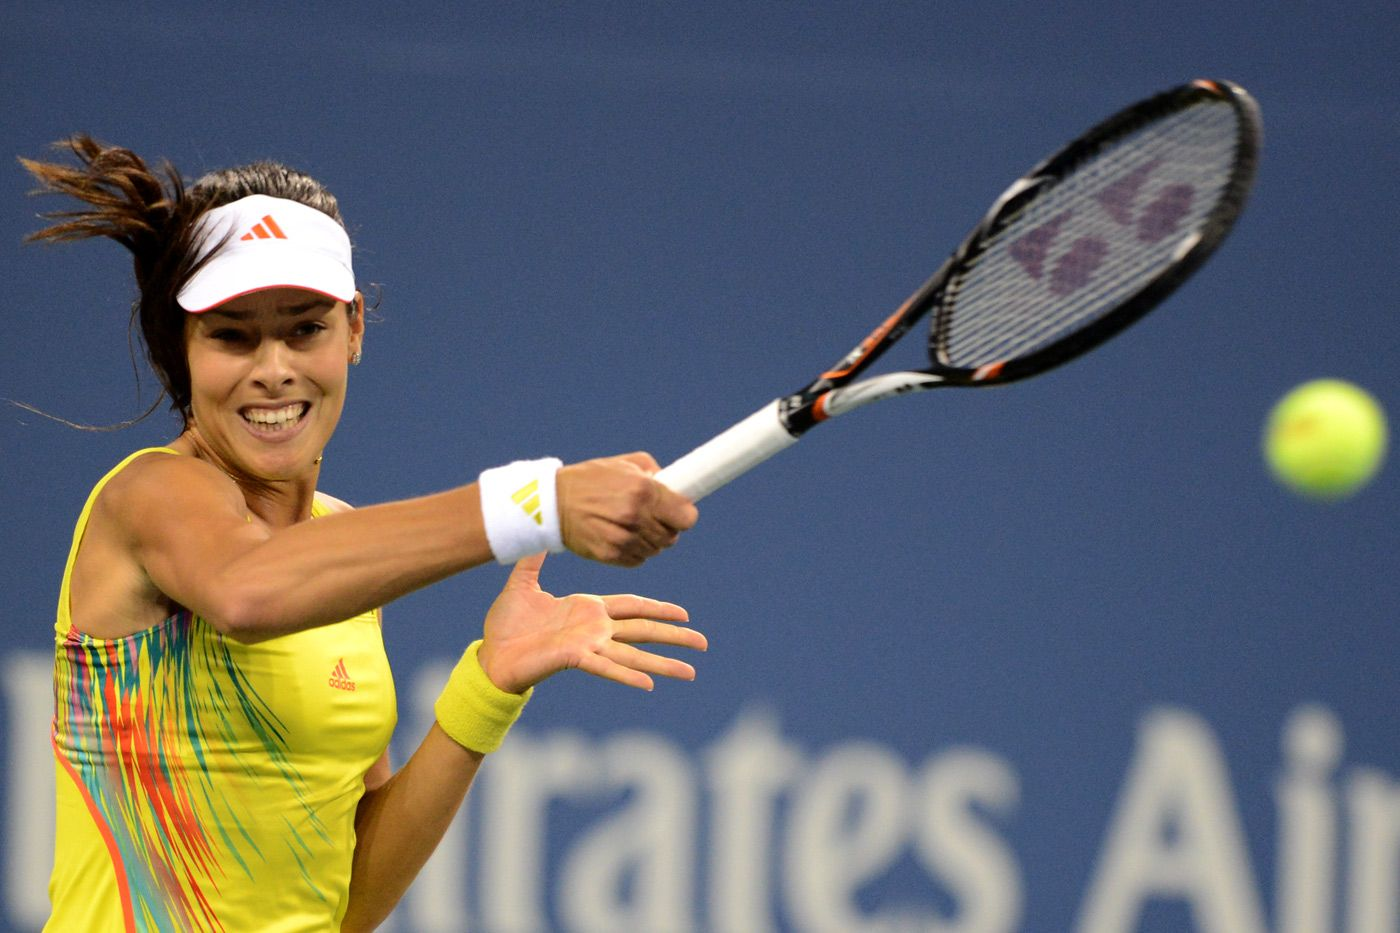 Former Number One Ana Ivanovic From Serbia Dropped Out Of The Scene For A While But Is Now Ranked Number 12